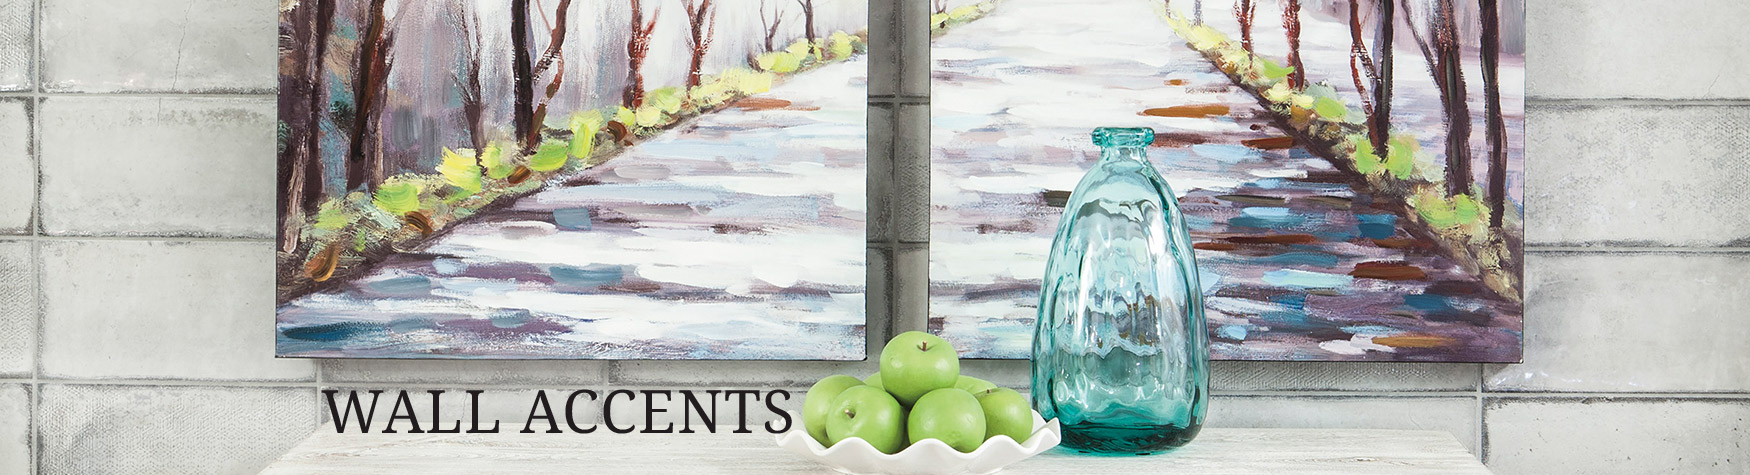 wall-accents-banner-1.jpg